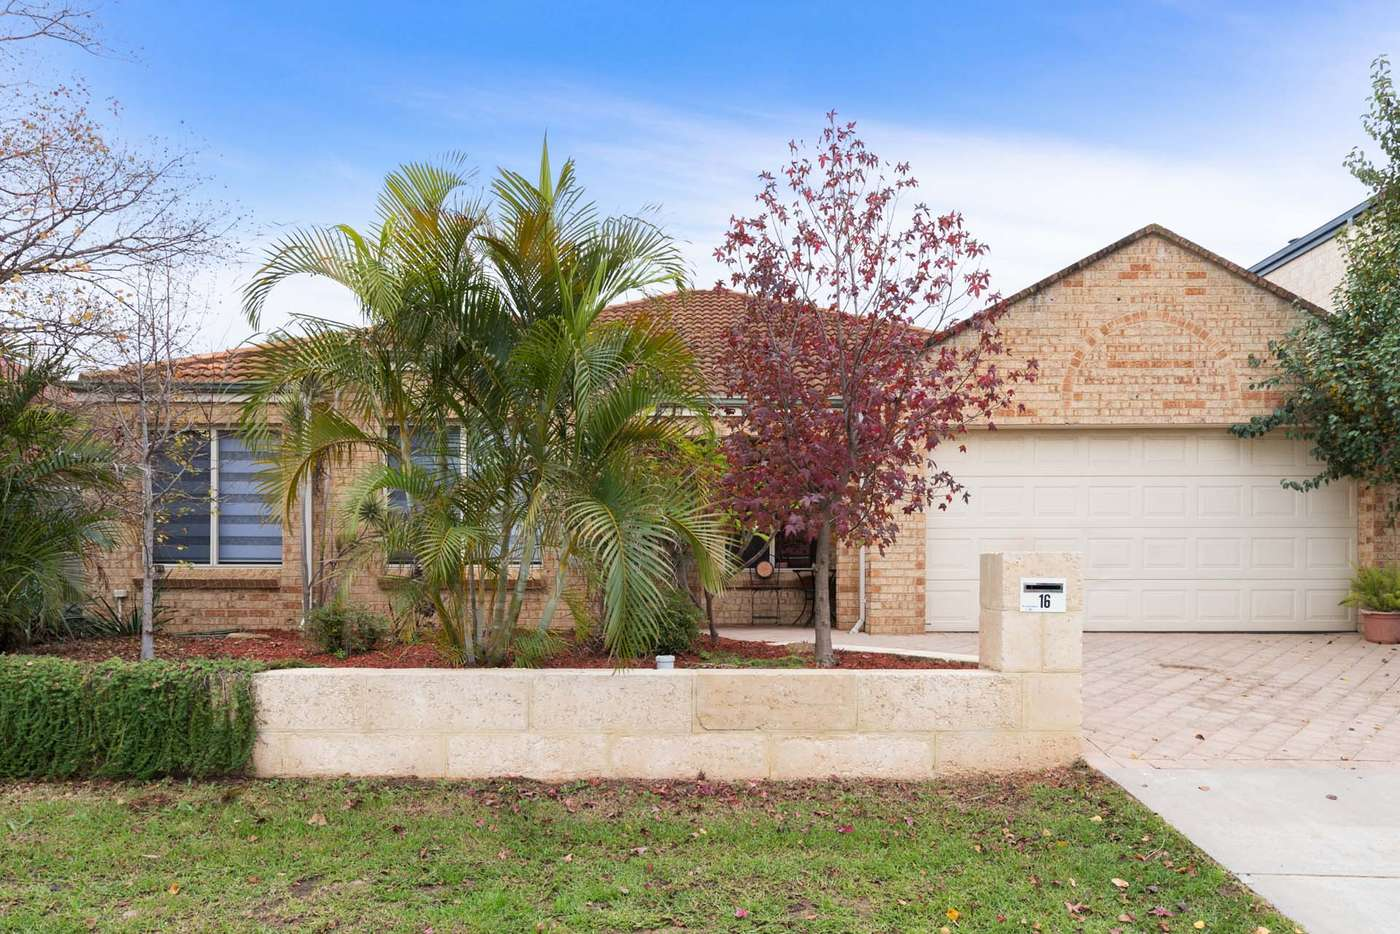 Main view of Homely house listing, 16 Duchess Court, Bayswater WA 6053